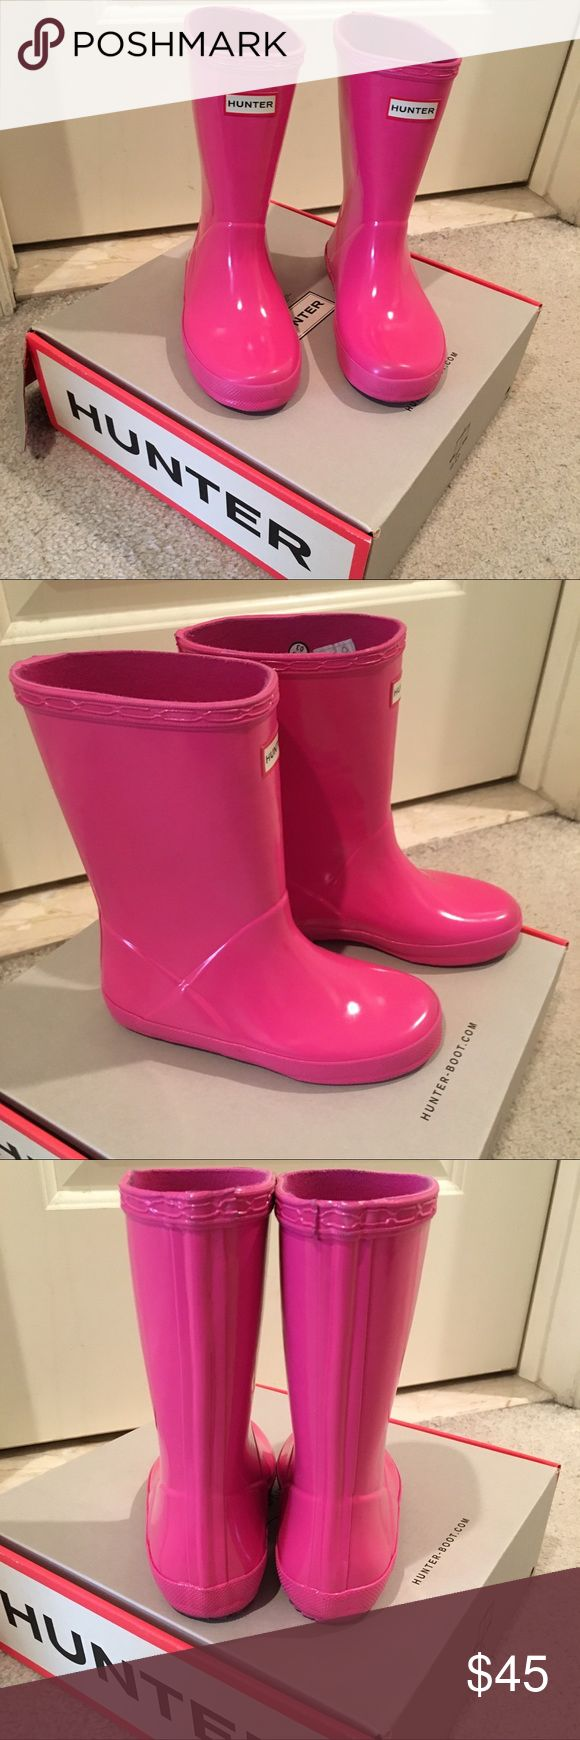 Kids Hunter Rain boots Kids Hunter pink glossy rain boots size 12. Great condition. Worn 2 times. Hunter Shoes Rain & Snow Boots